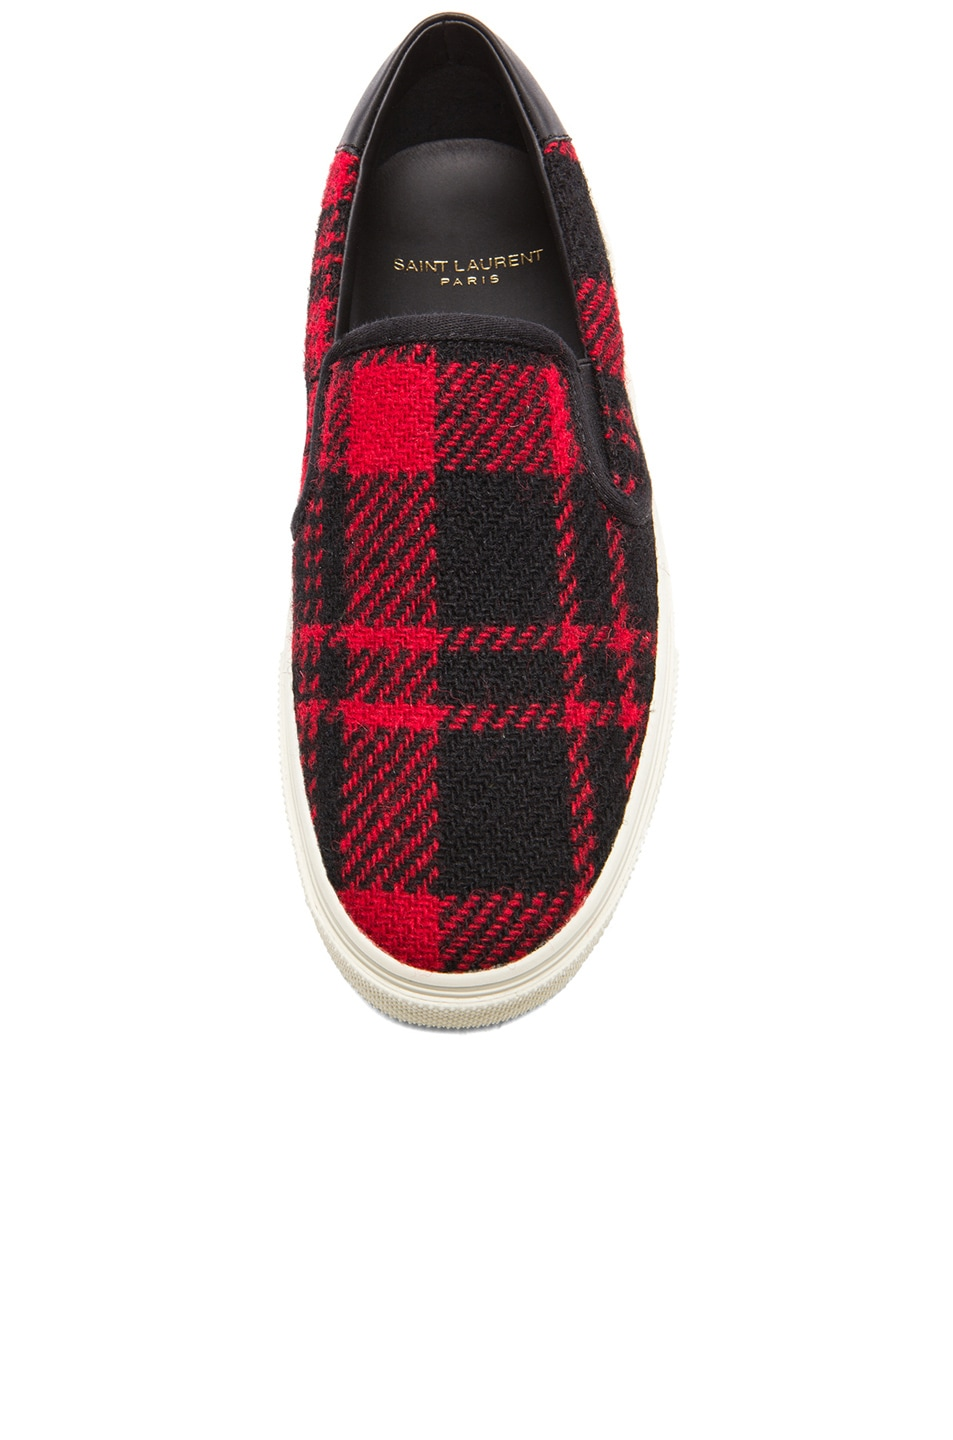 Image 4 of Saint Laurent Tweed Skate Slip-On Sneakers in Red & Black